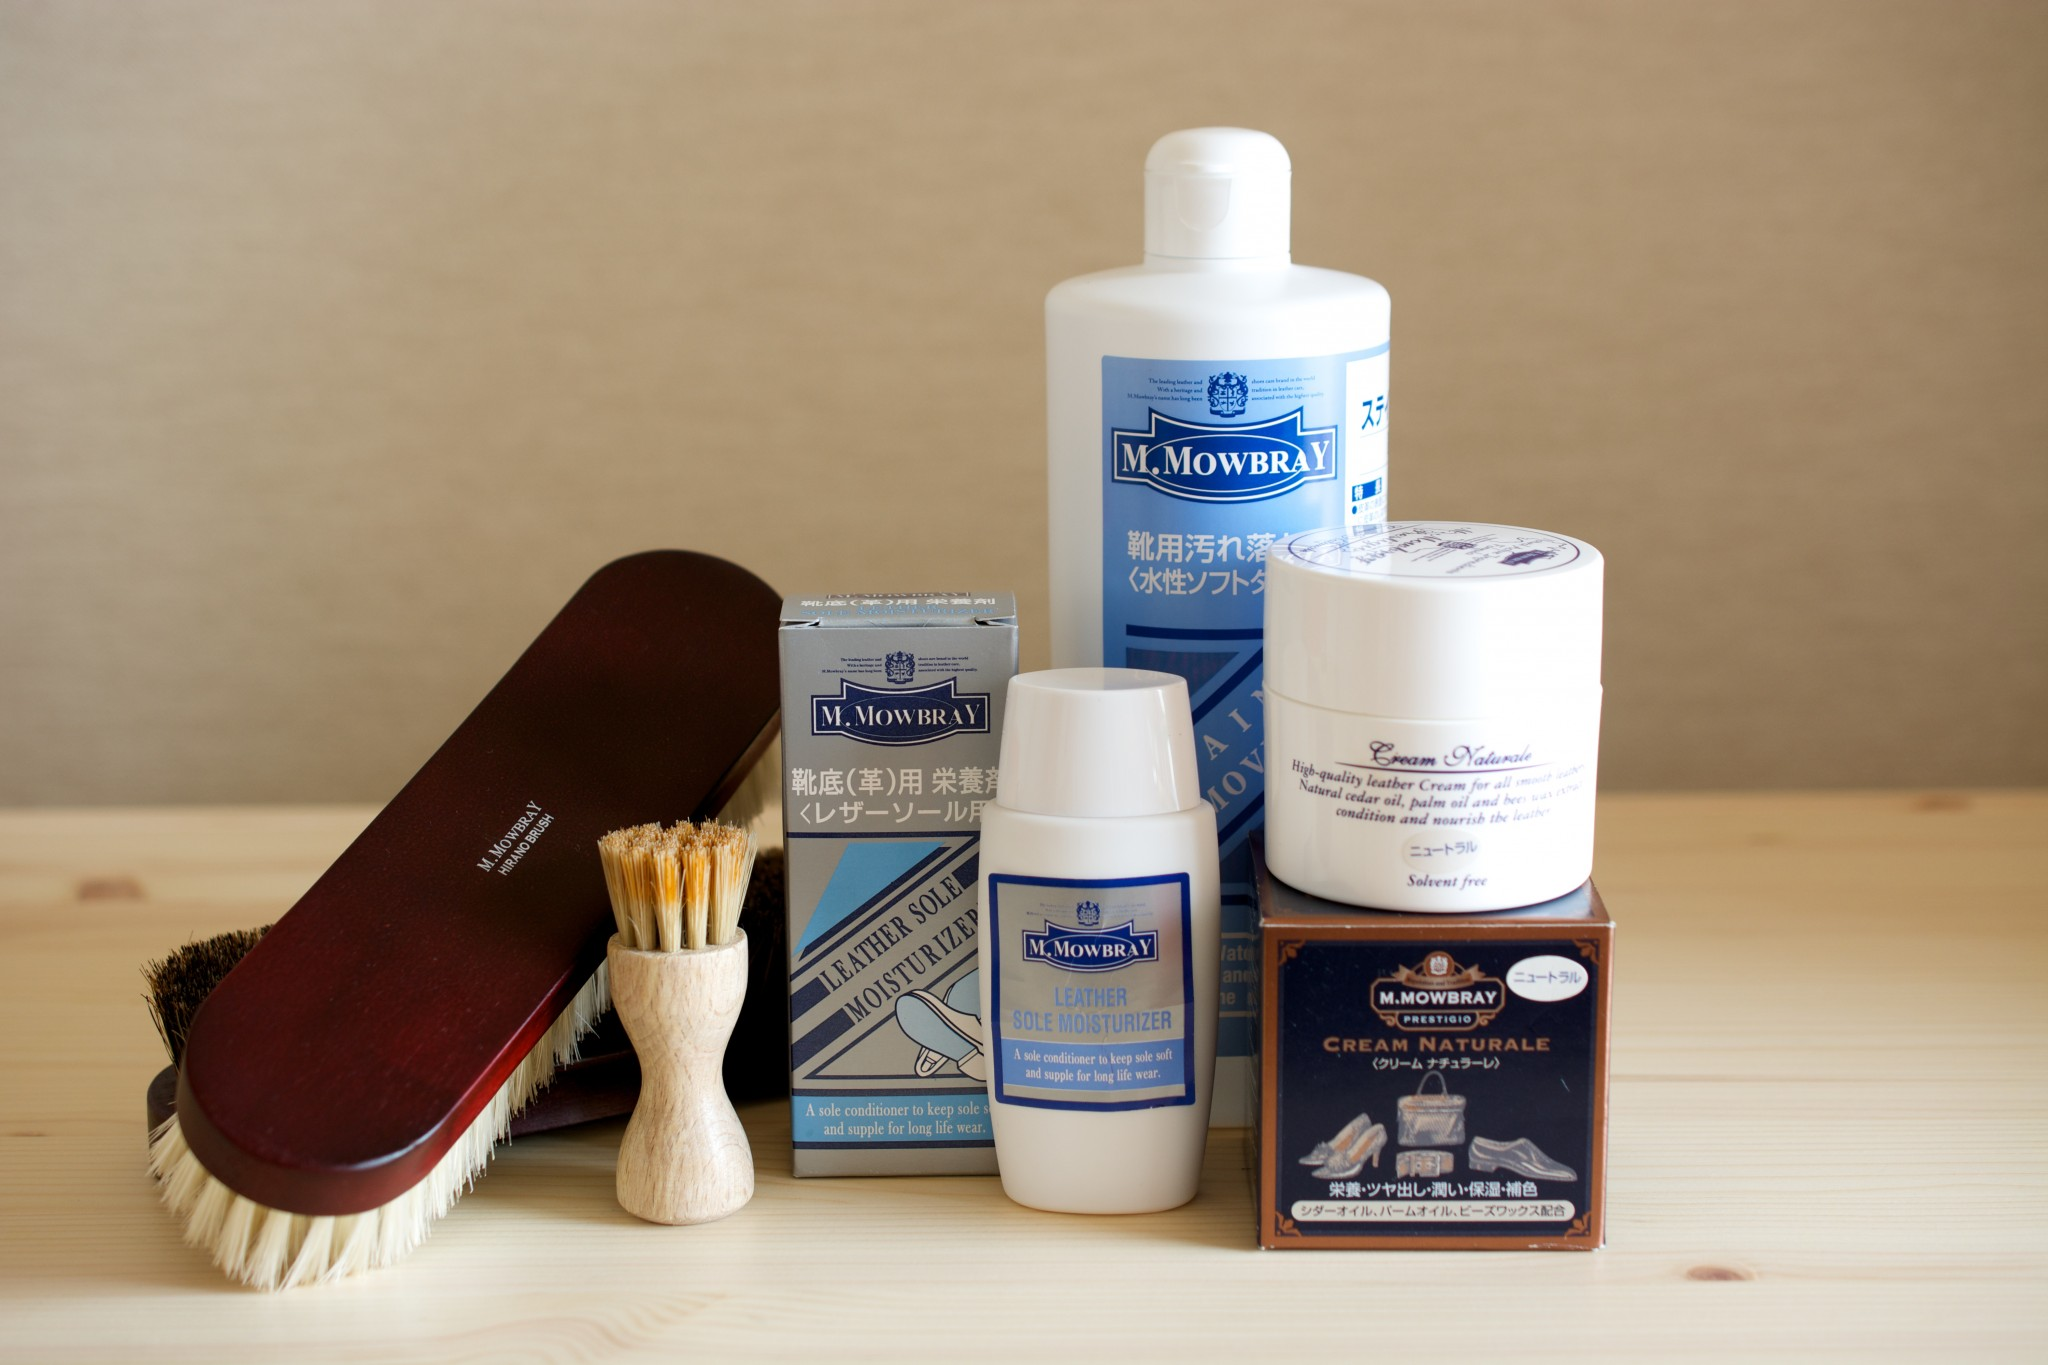 [M.Mowbray]Shoe Care Goods]